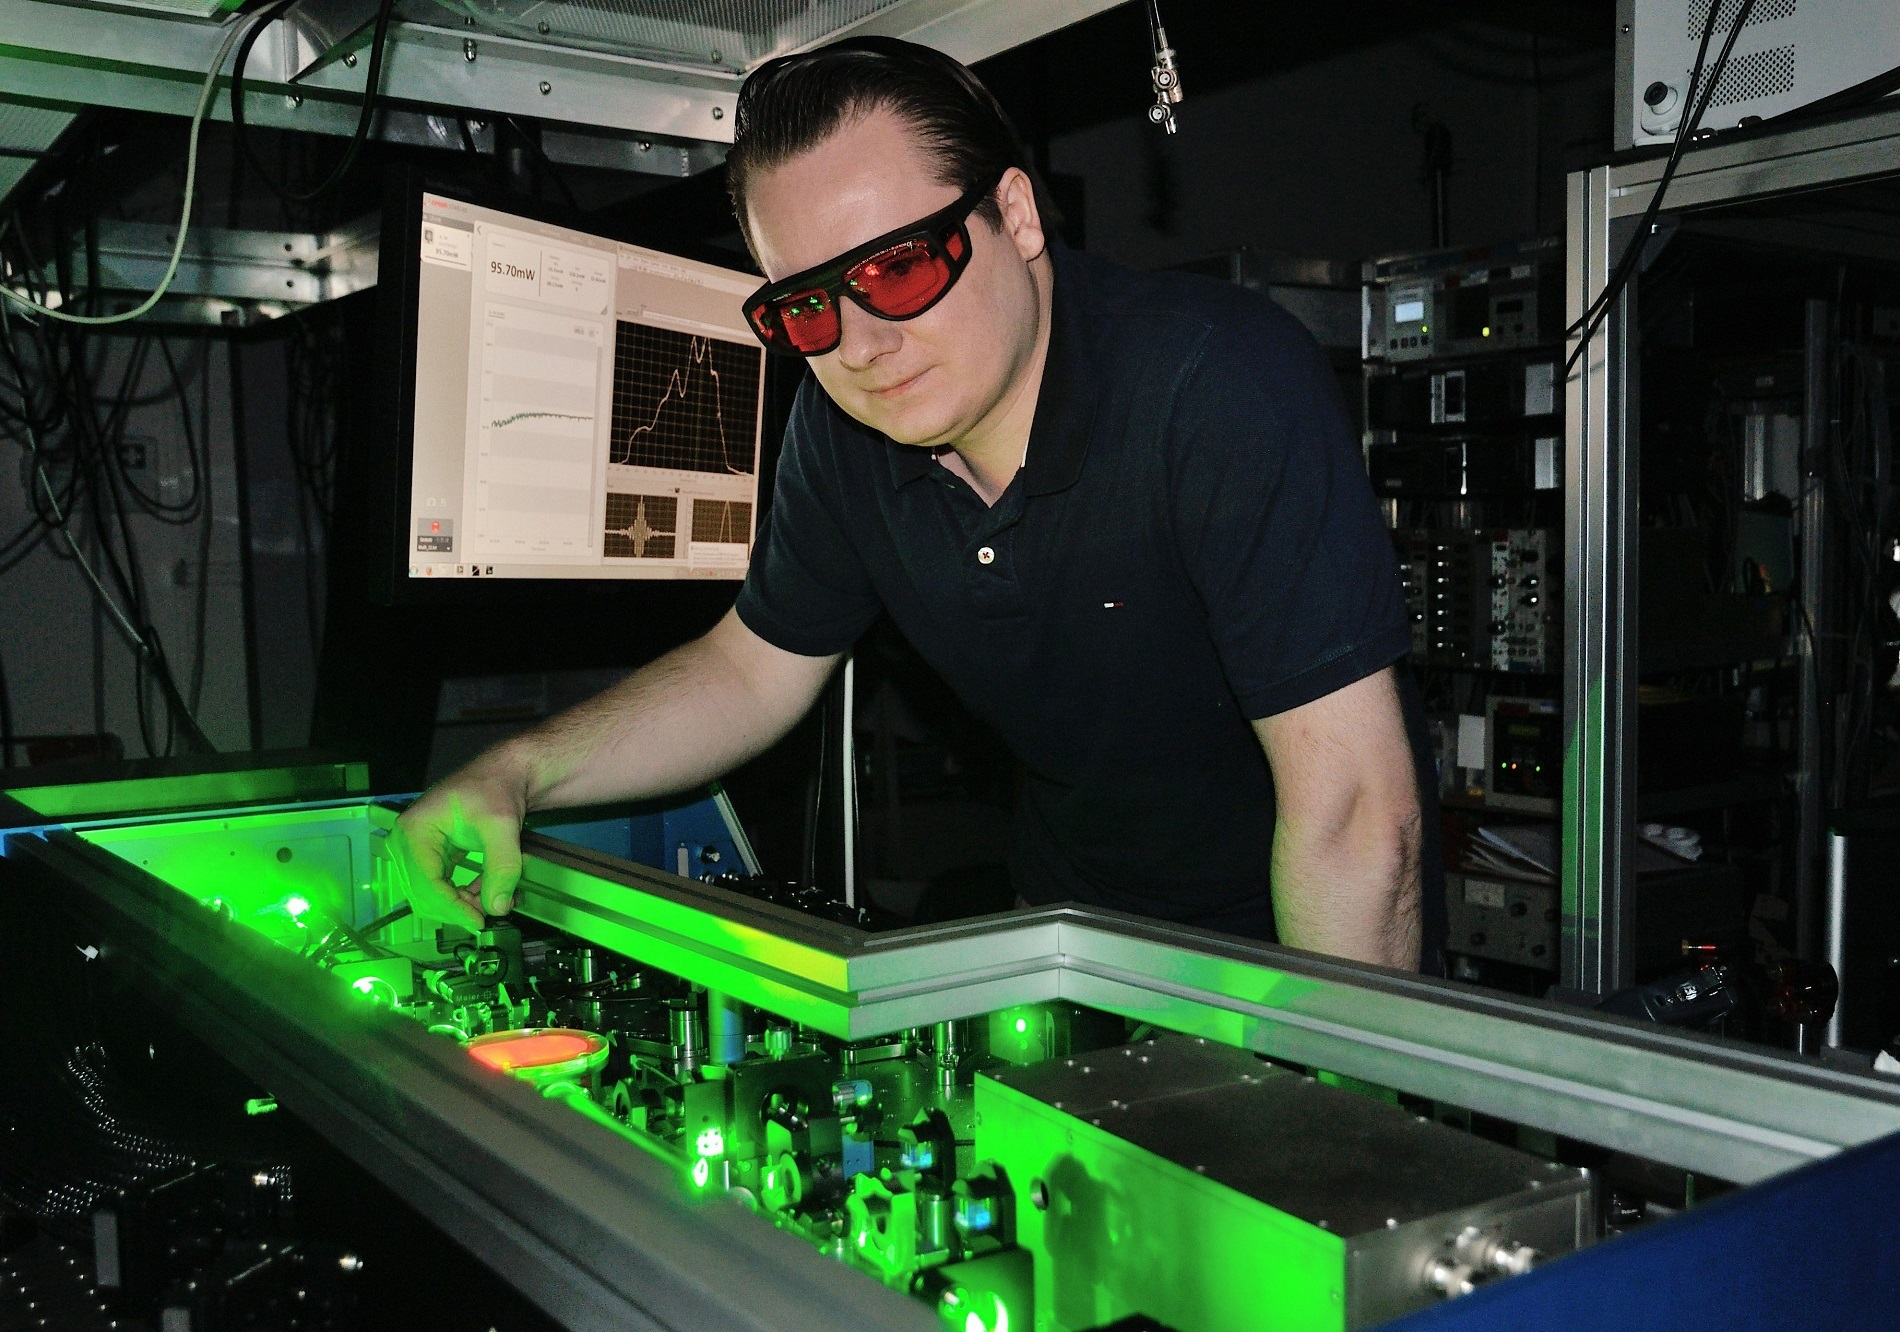 To emit electrons from the semiconductor crystal, researchers bombard it with ultra-short laser pulses.